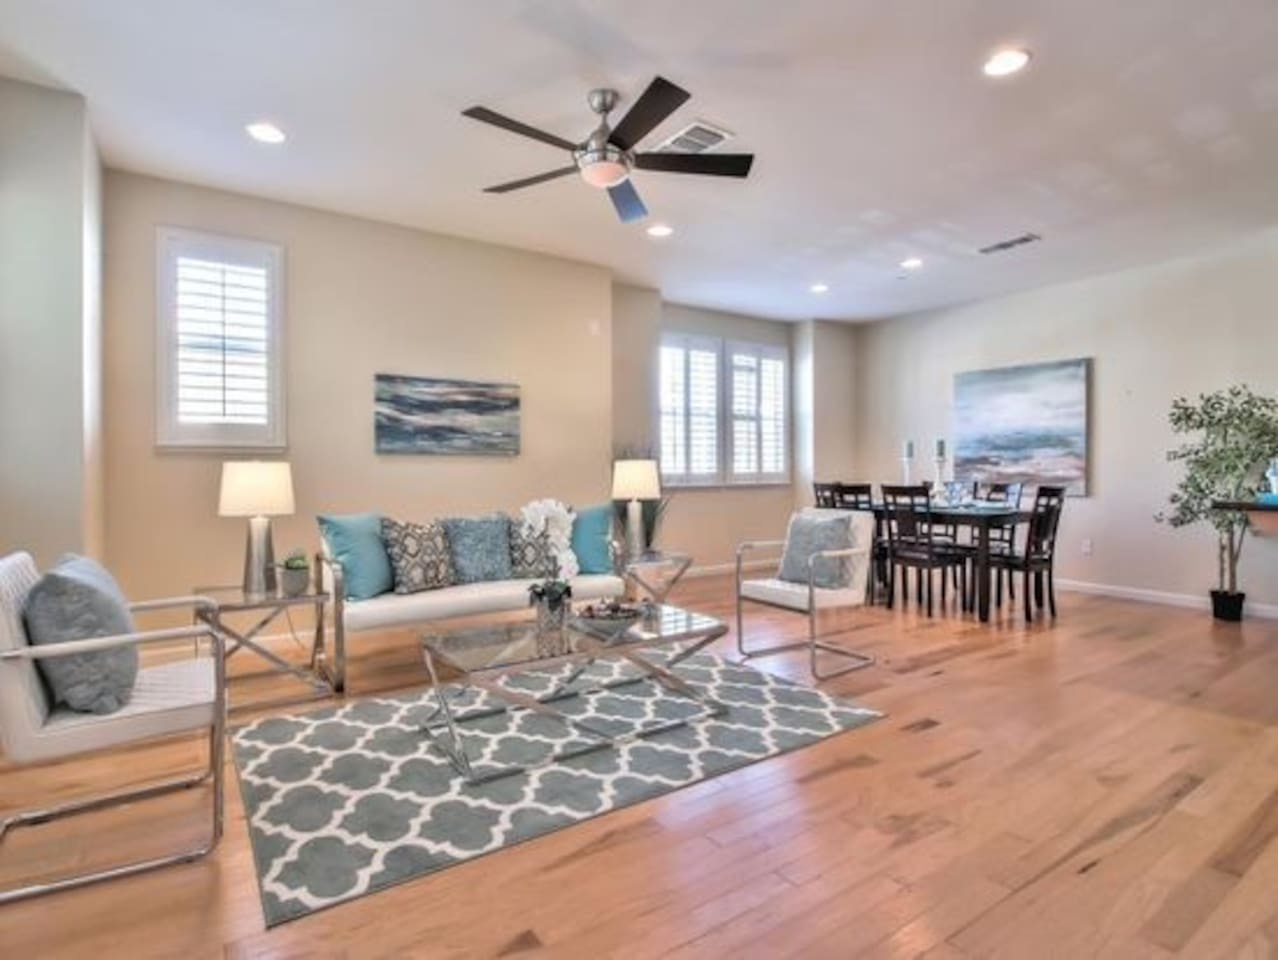 Spacious hardwood floor in living and dining area